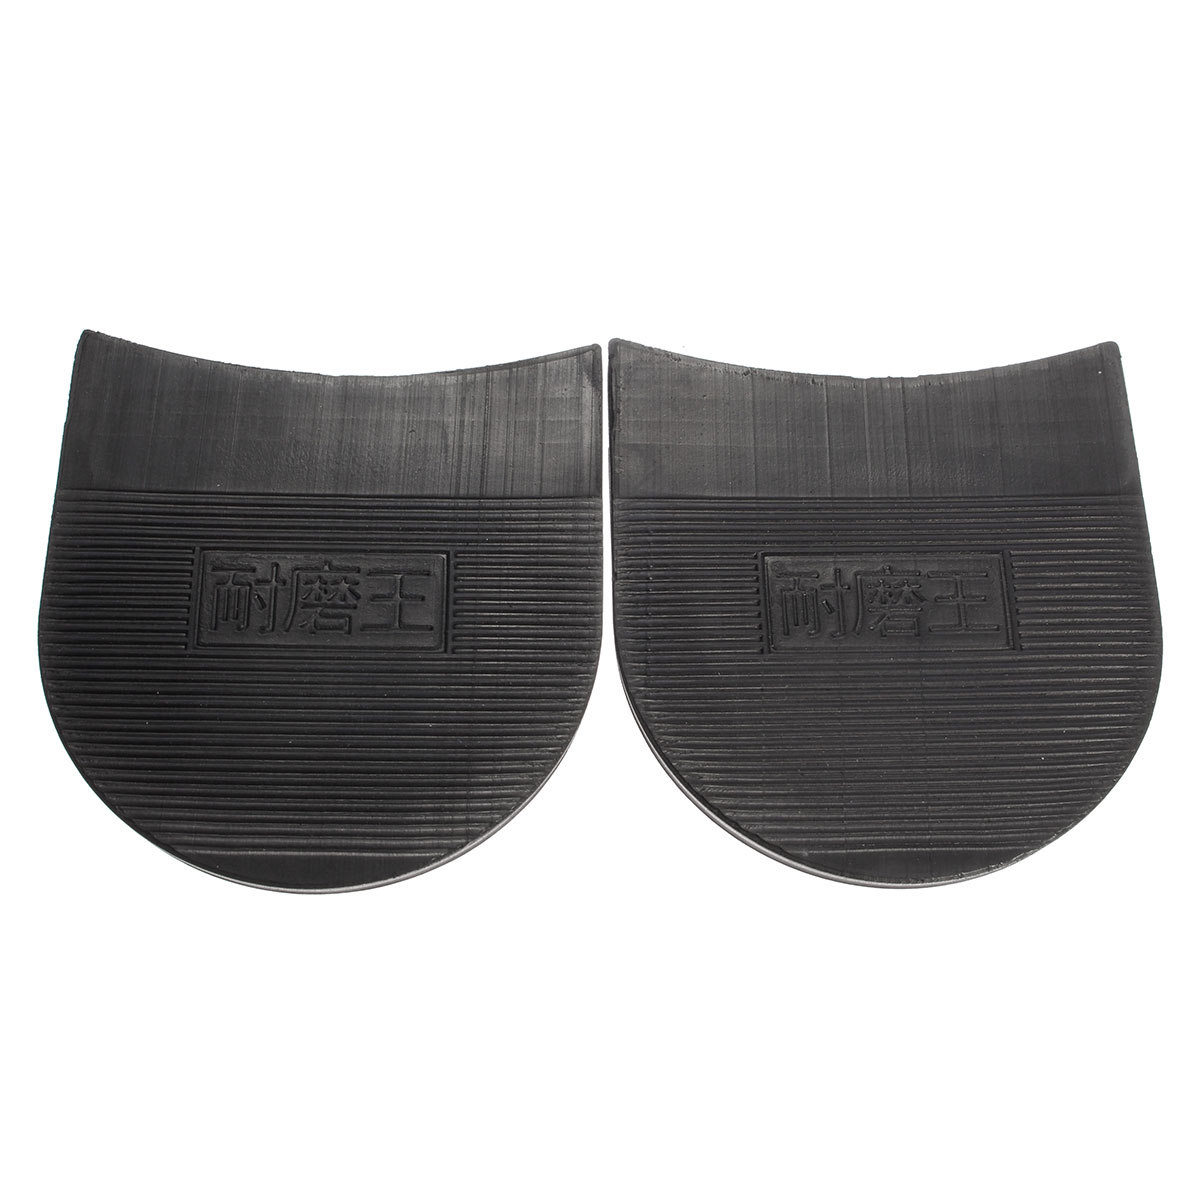 1 Pair Rubber Shoe Soles, Mens Self-Adhesive DIY Stick On Shoes Sole, Anti-Slip Black Hard-Wearing Mat Insoles Pads Sticker